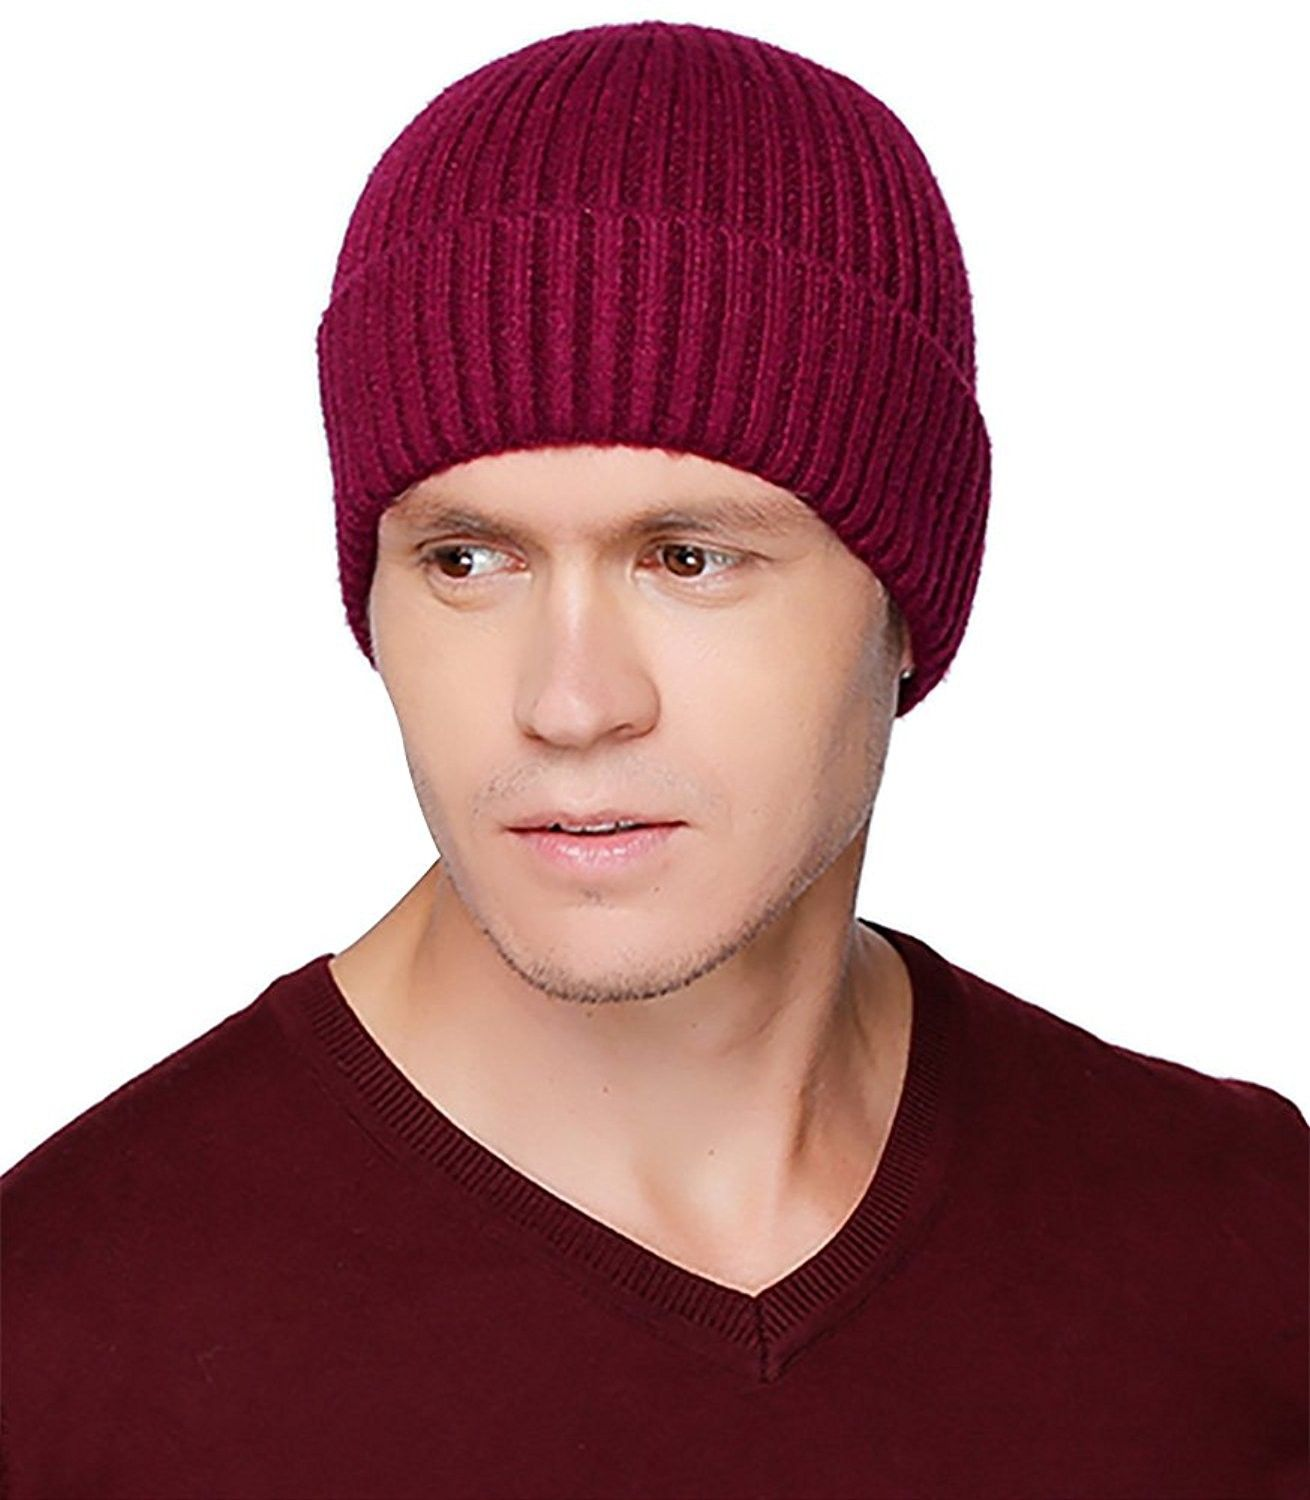 ee5d0adcccb Mens Baggy Winter Knitting Skull Cap Wool Warm Slouchy Beanie Hat ...